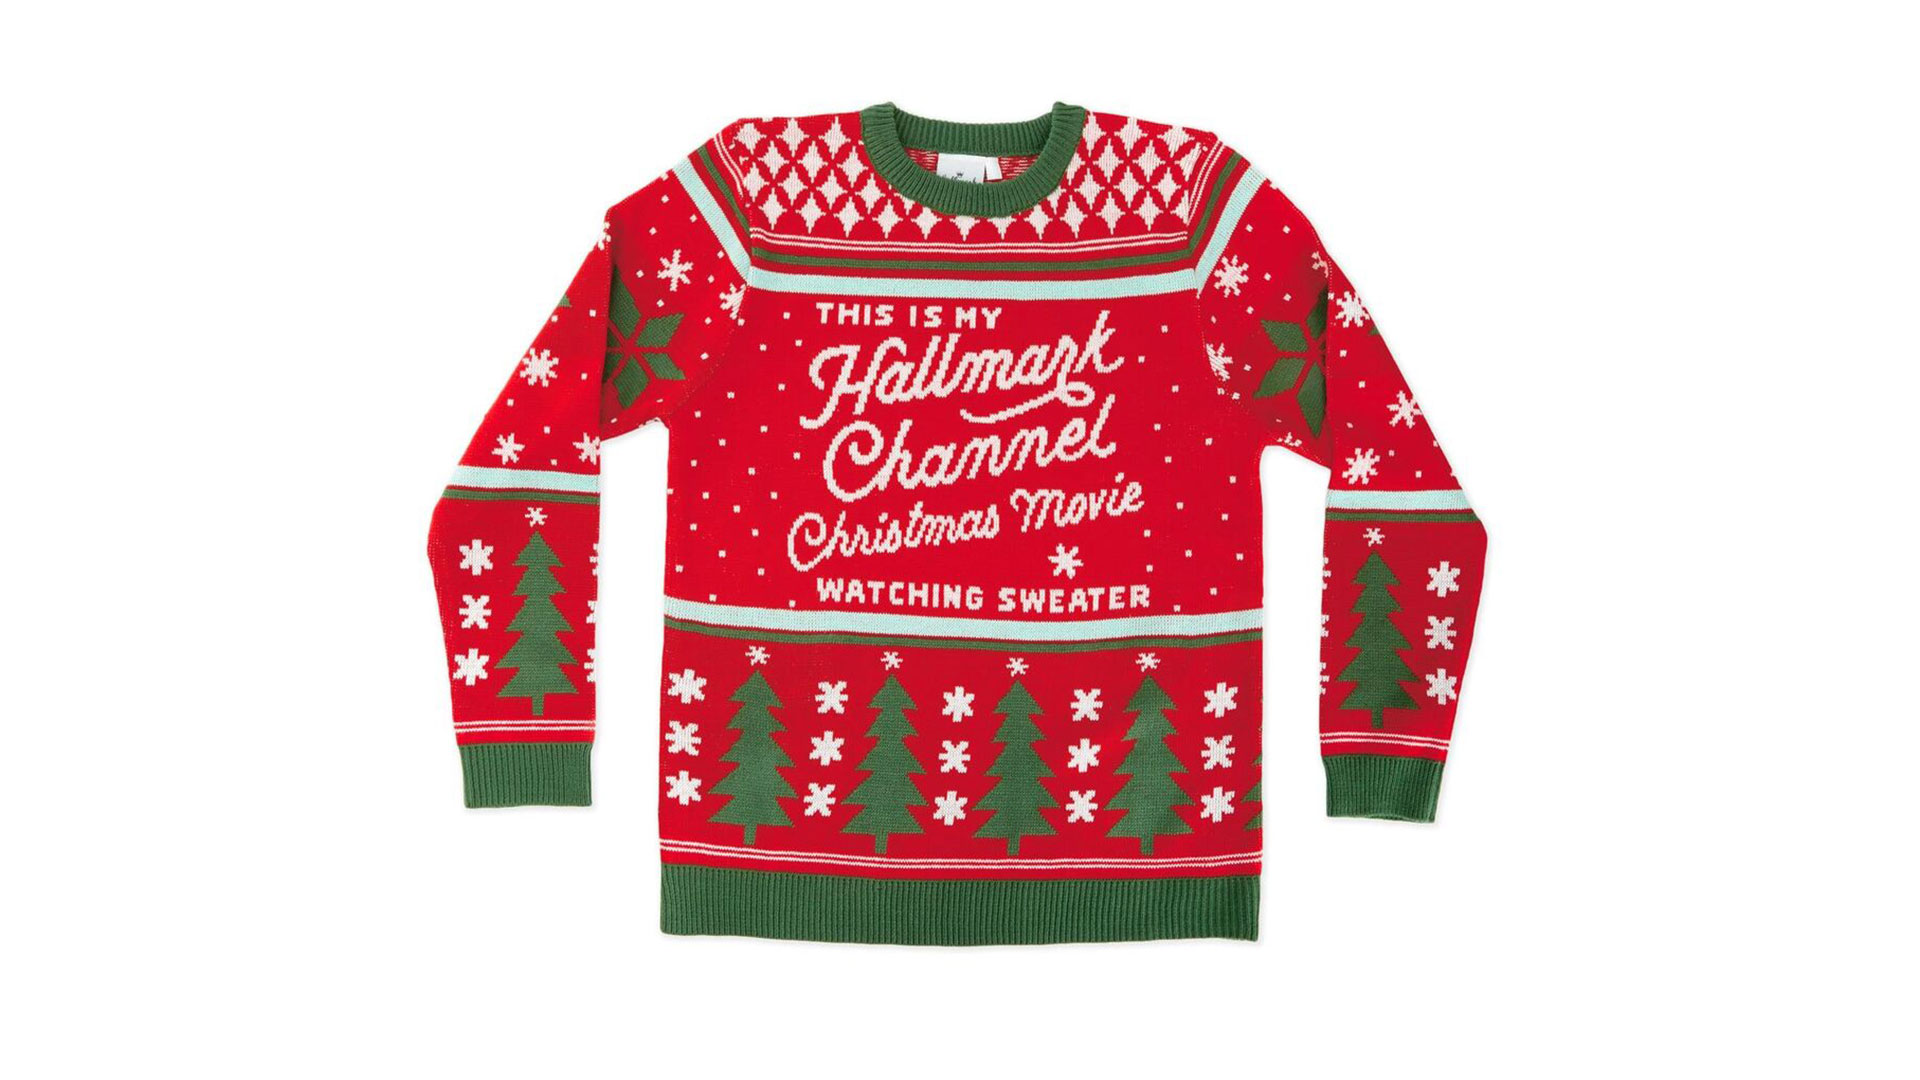 Hallmark Channel Ugly Christmas Sweater